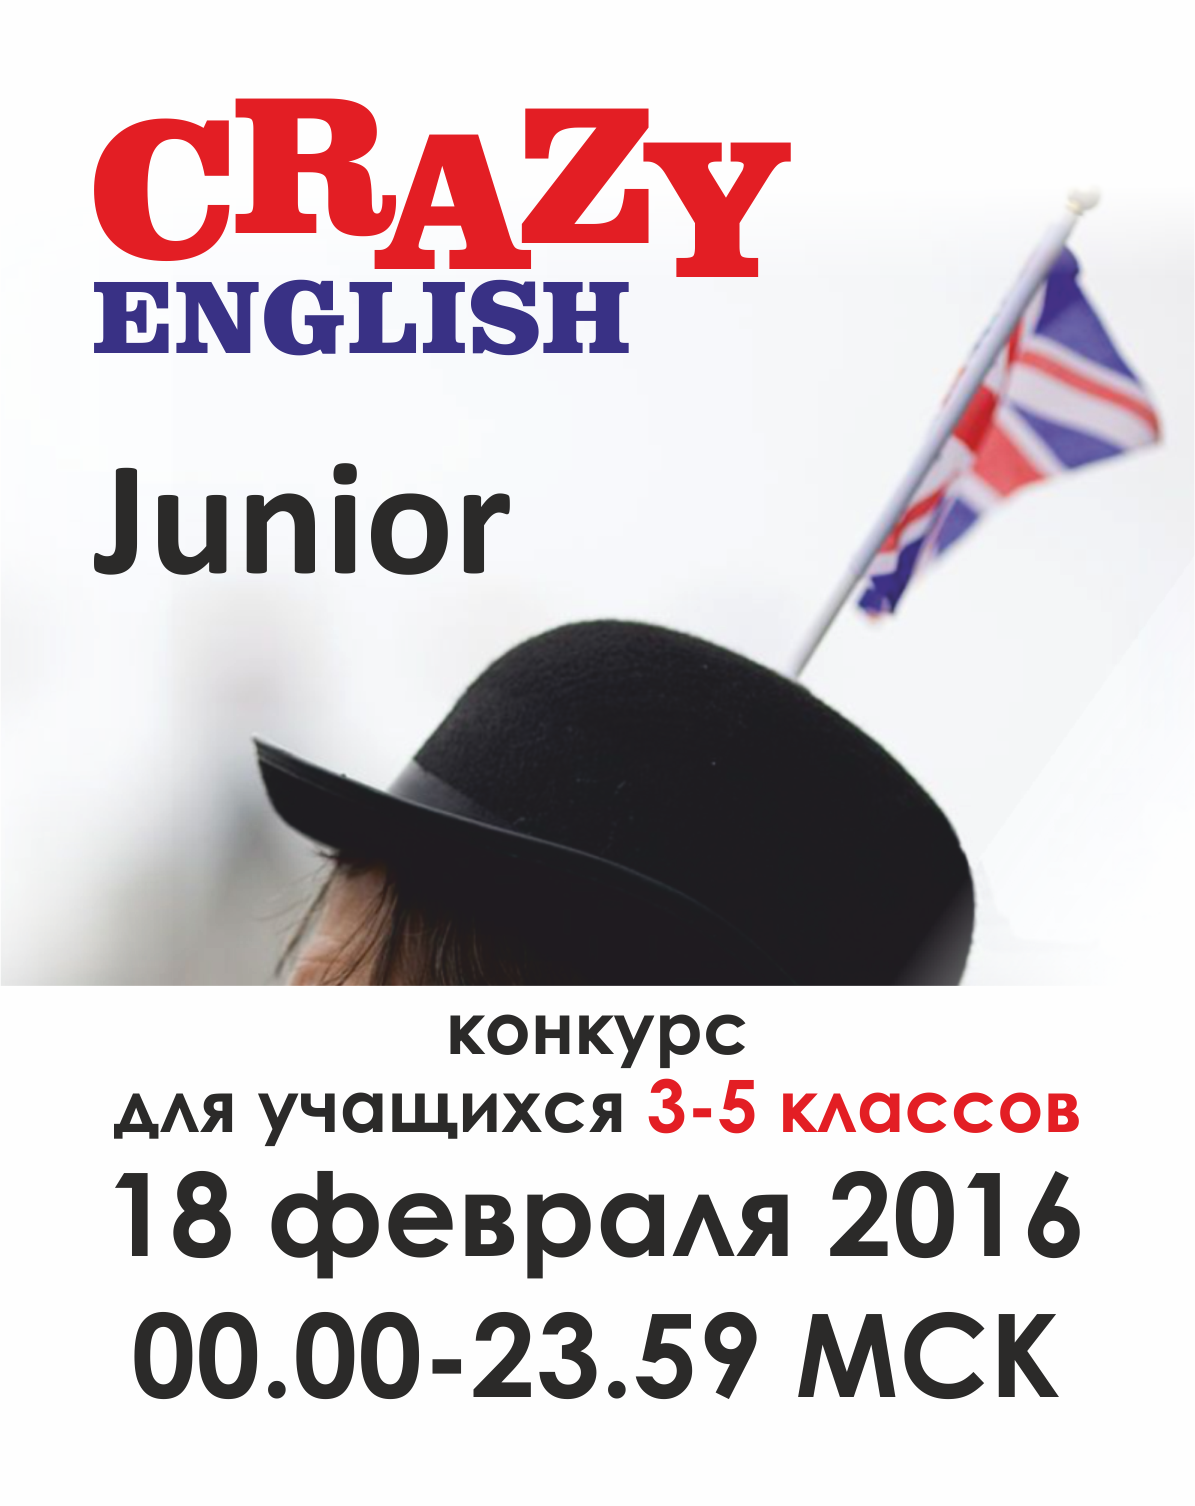 CRAZY ENGLISH JUNIOR (3-5 классы)